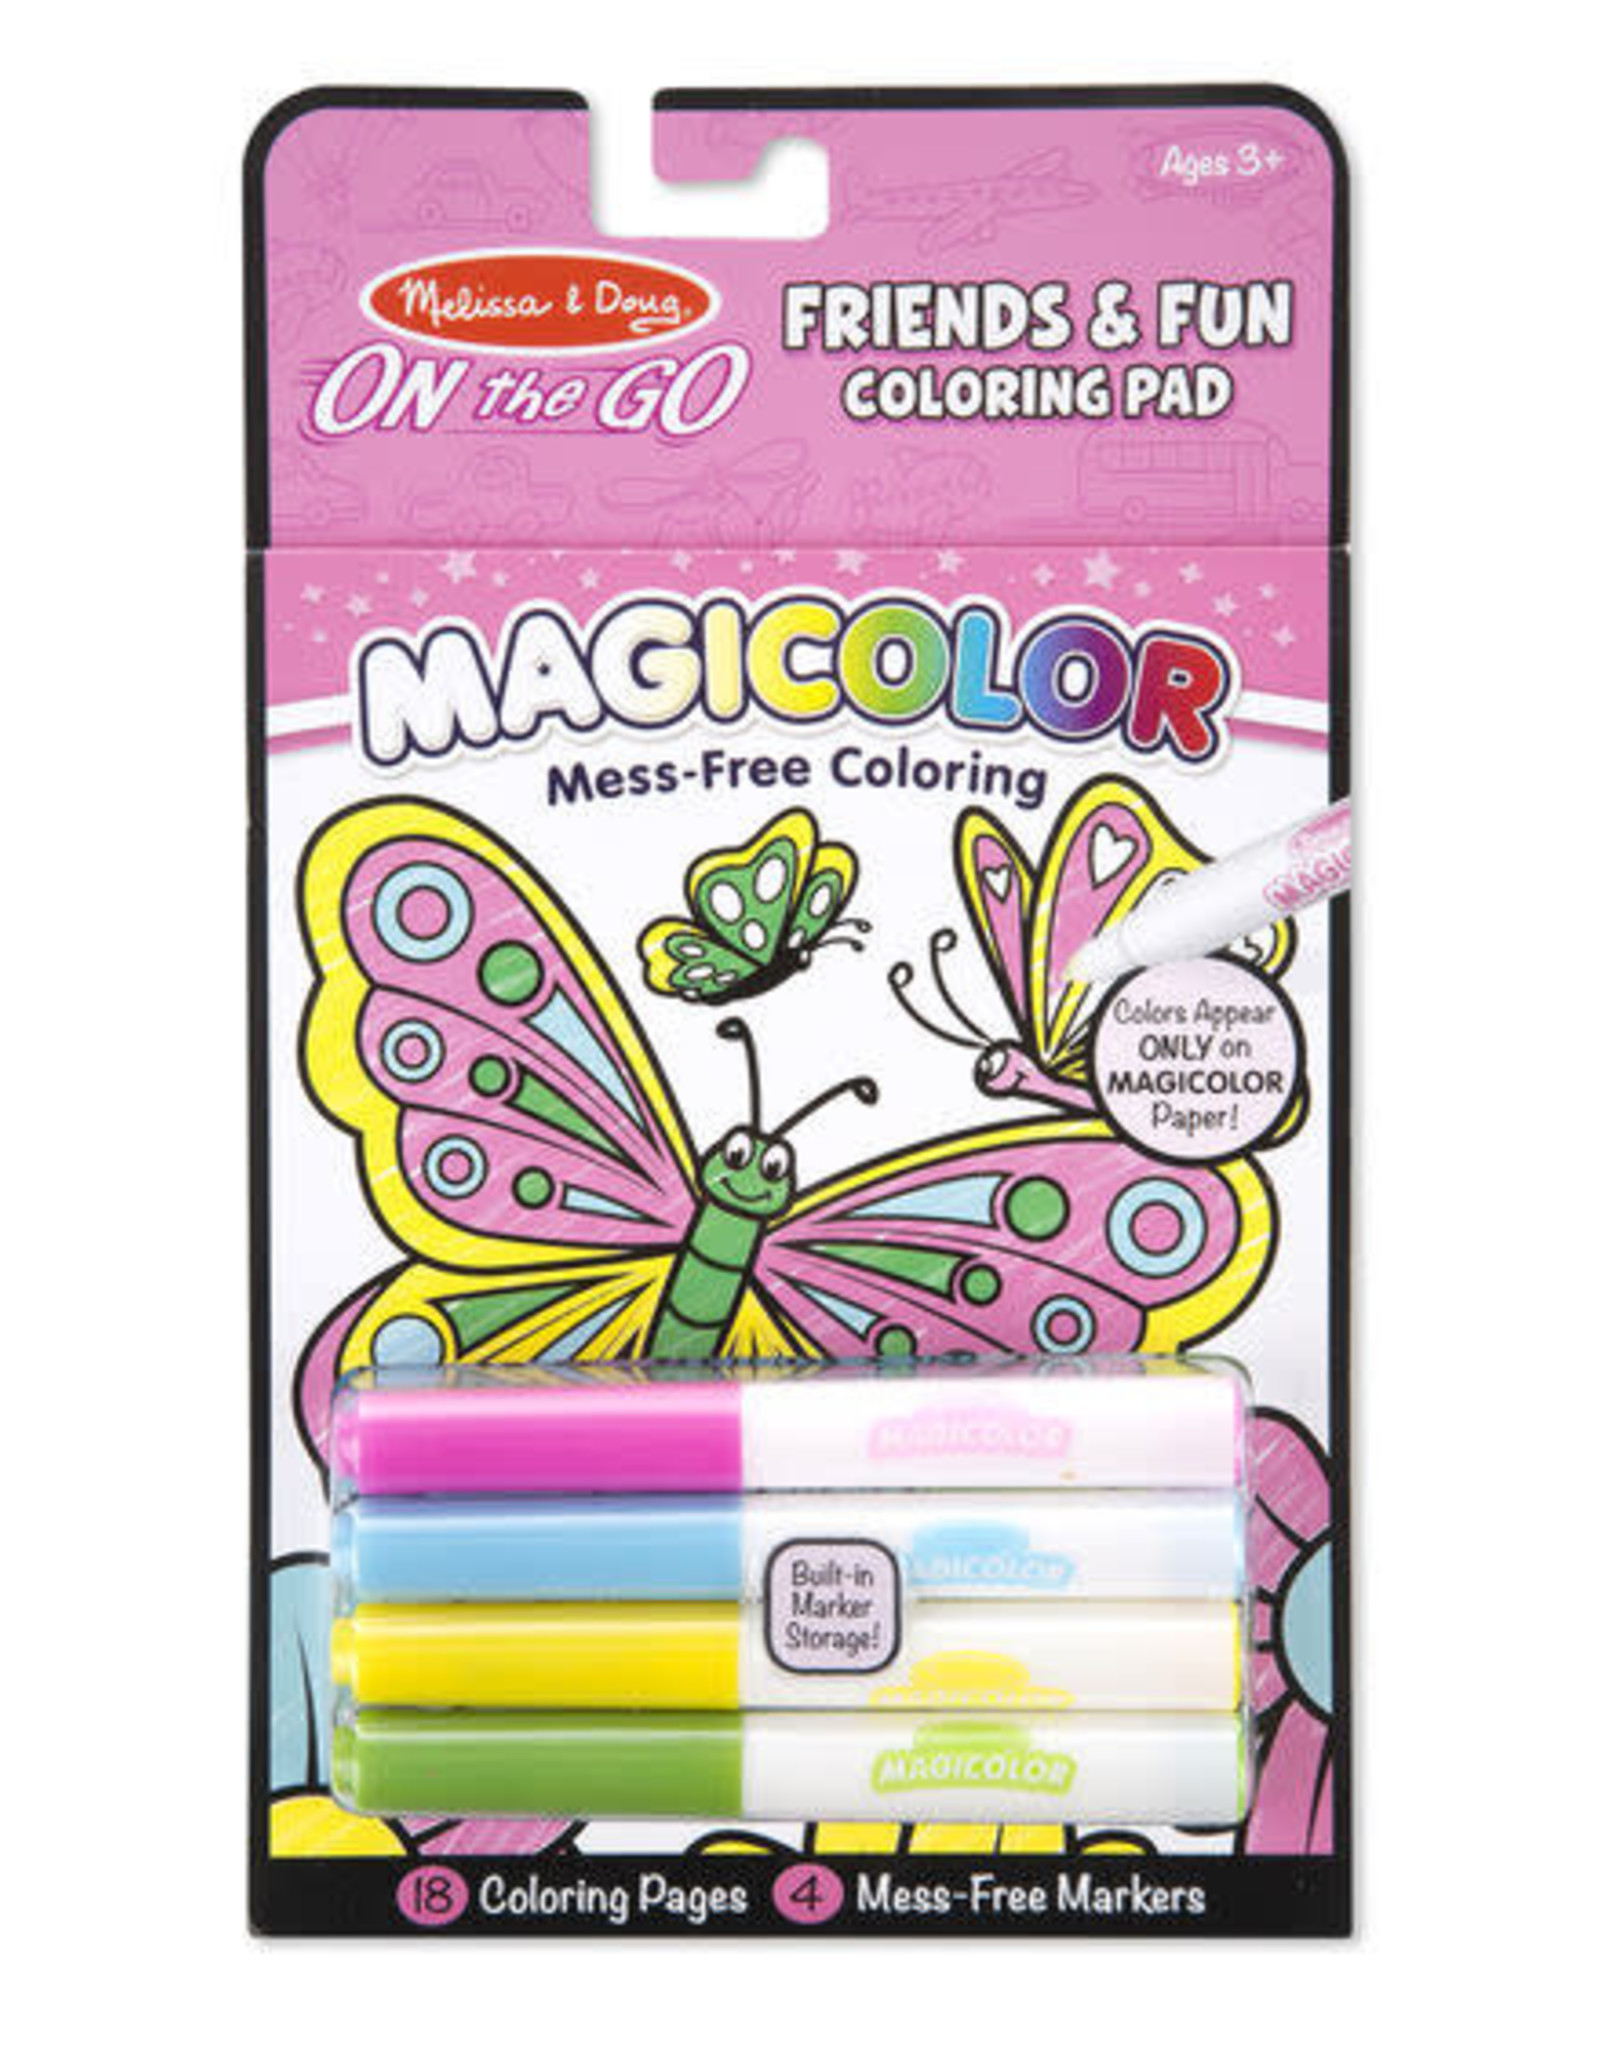 Melissa & Doug Melissa & Doug Magicolor Coloring Pad - Friendship & Fun